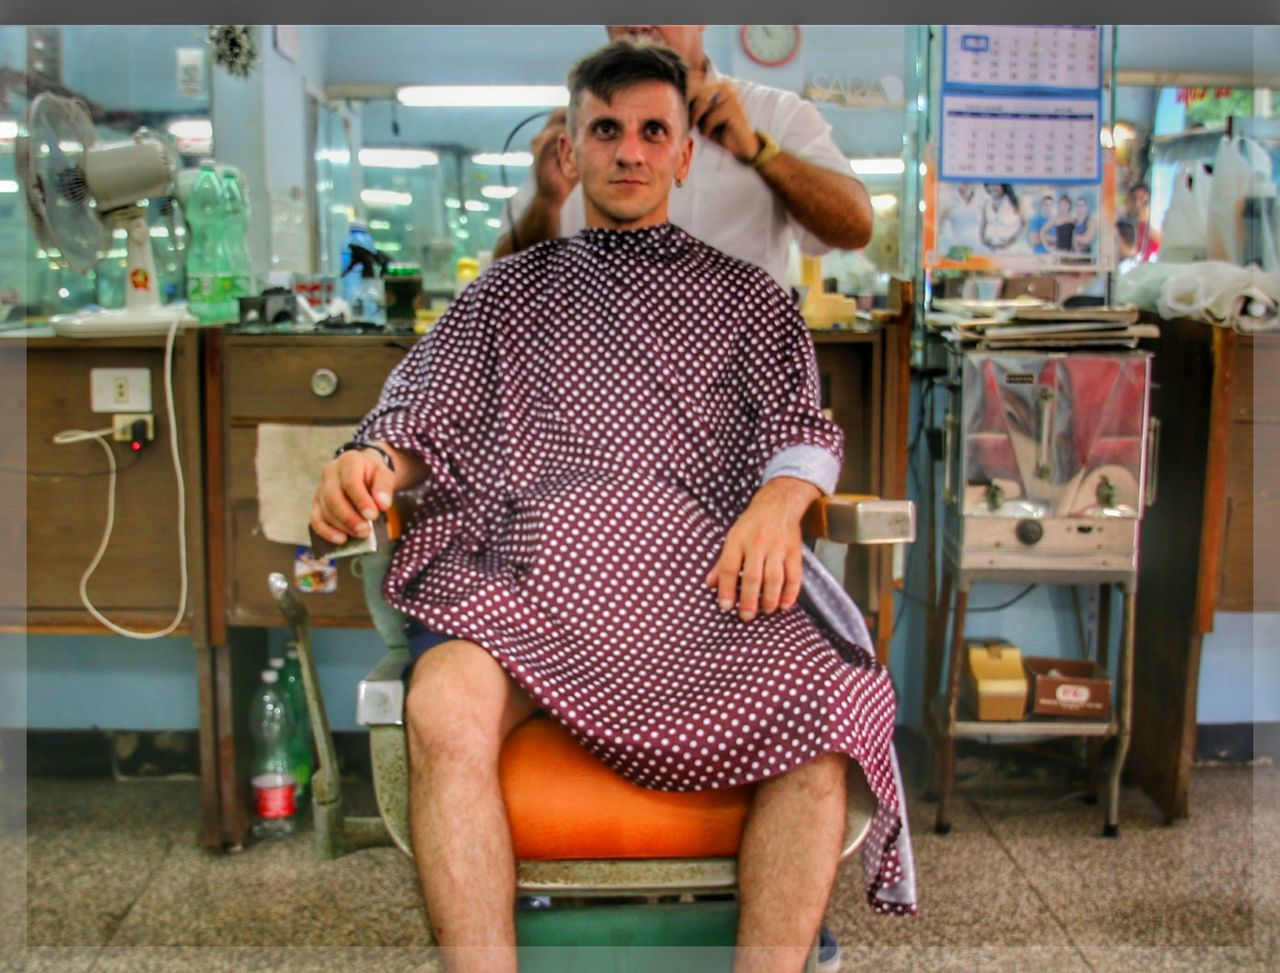 Cameraontripod Havanna, Cuba Self-portrait Self Portrait Hairdresser Hairstylist Haircut Hairstyle Looking At Camera Only Men One Man Only Adult One Person Adults Only Front View Standing Portrait People Indoors  Mature Adult Day Sitting